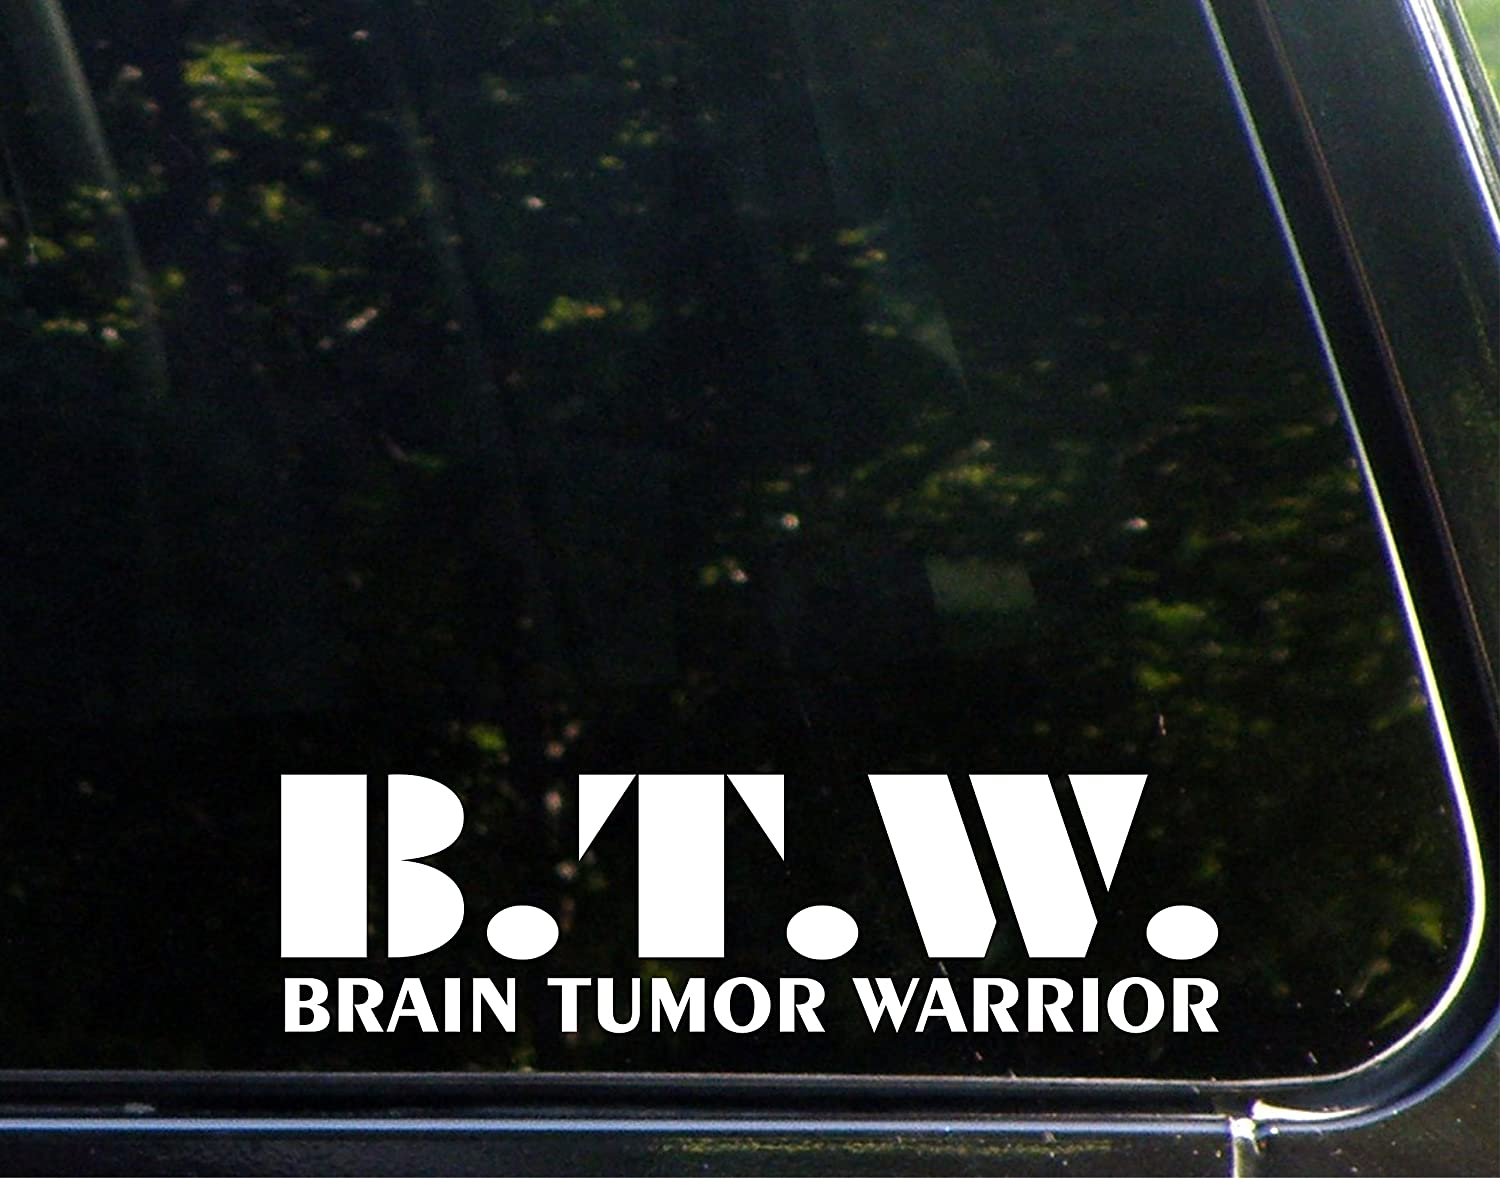 BTW Brain Tumor Warrior – 8 3 / 4